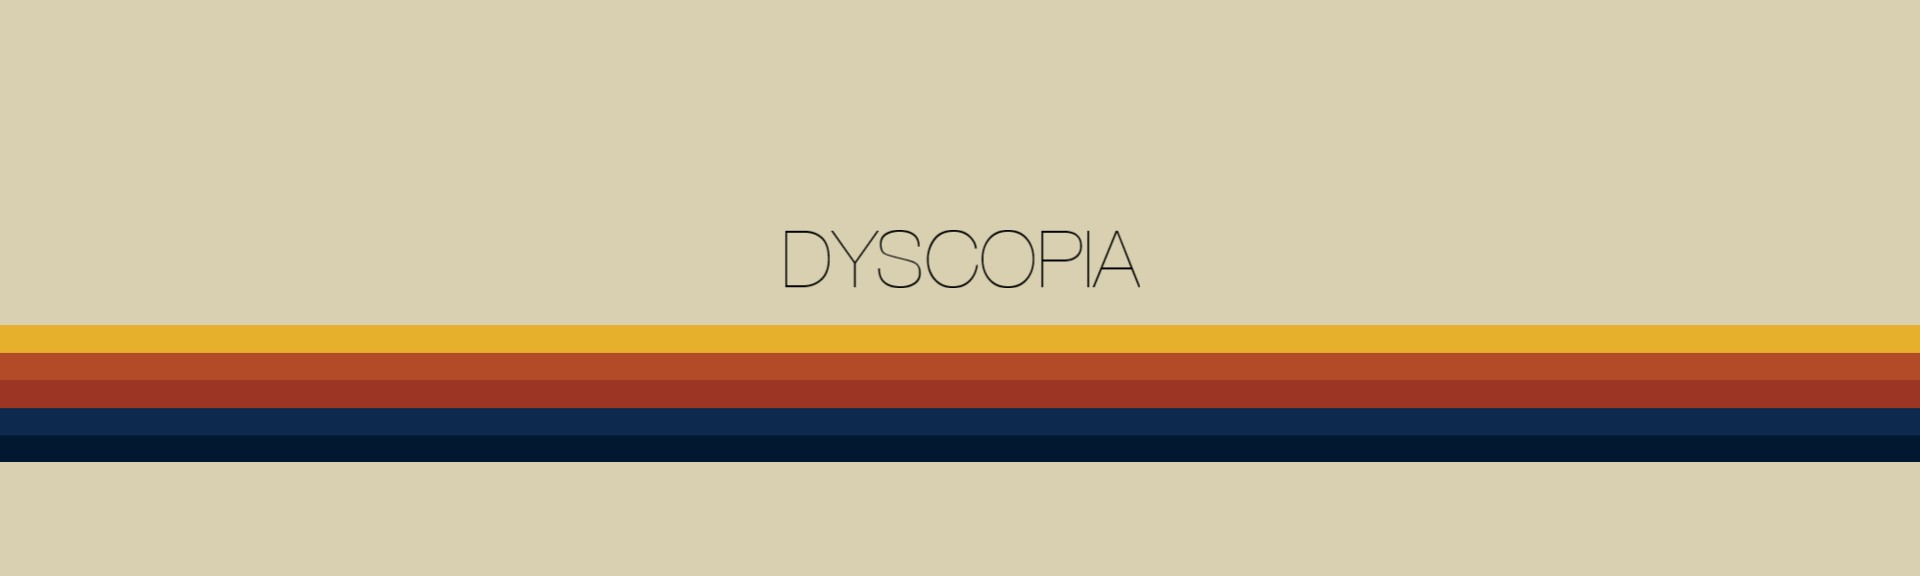 dyscopia film